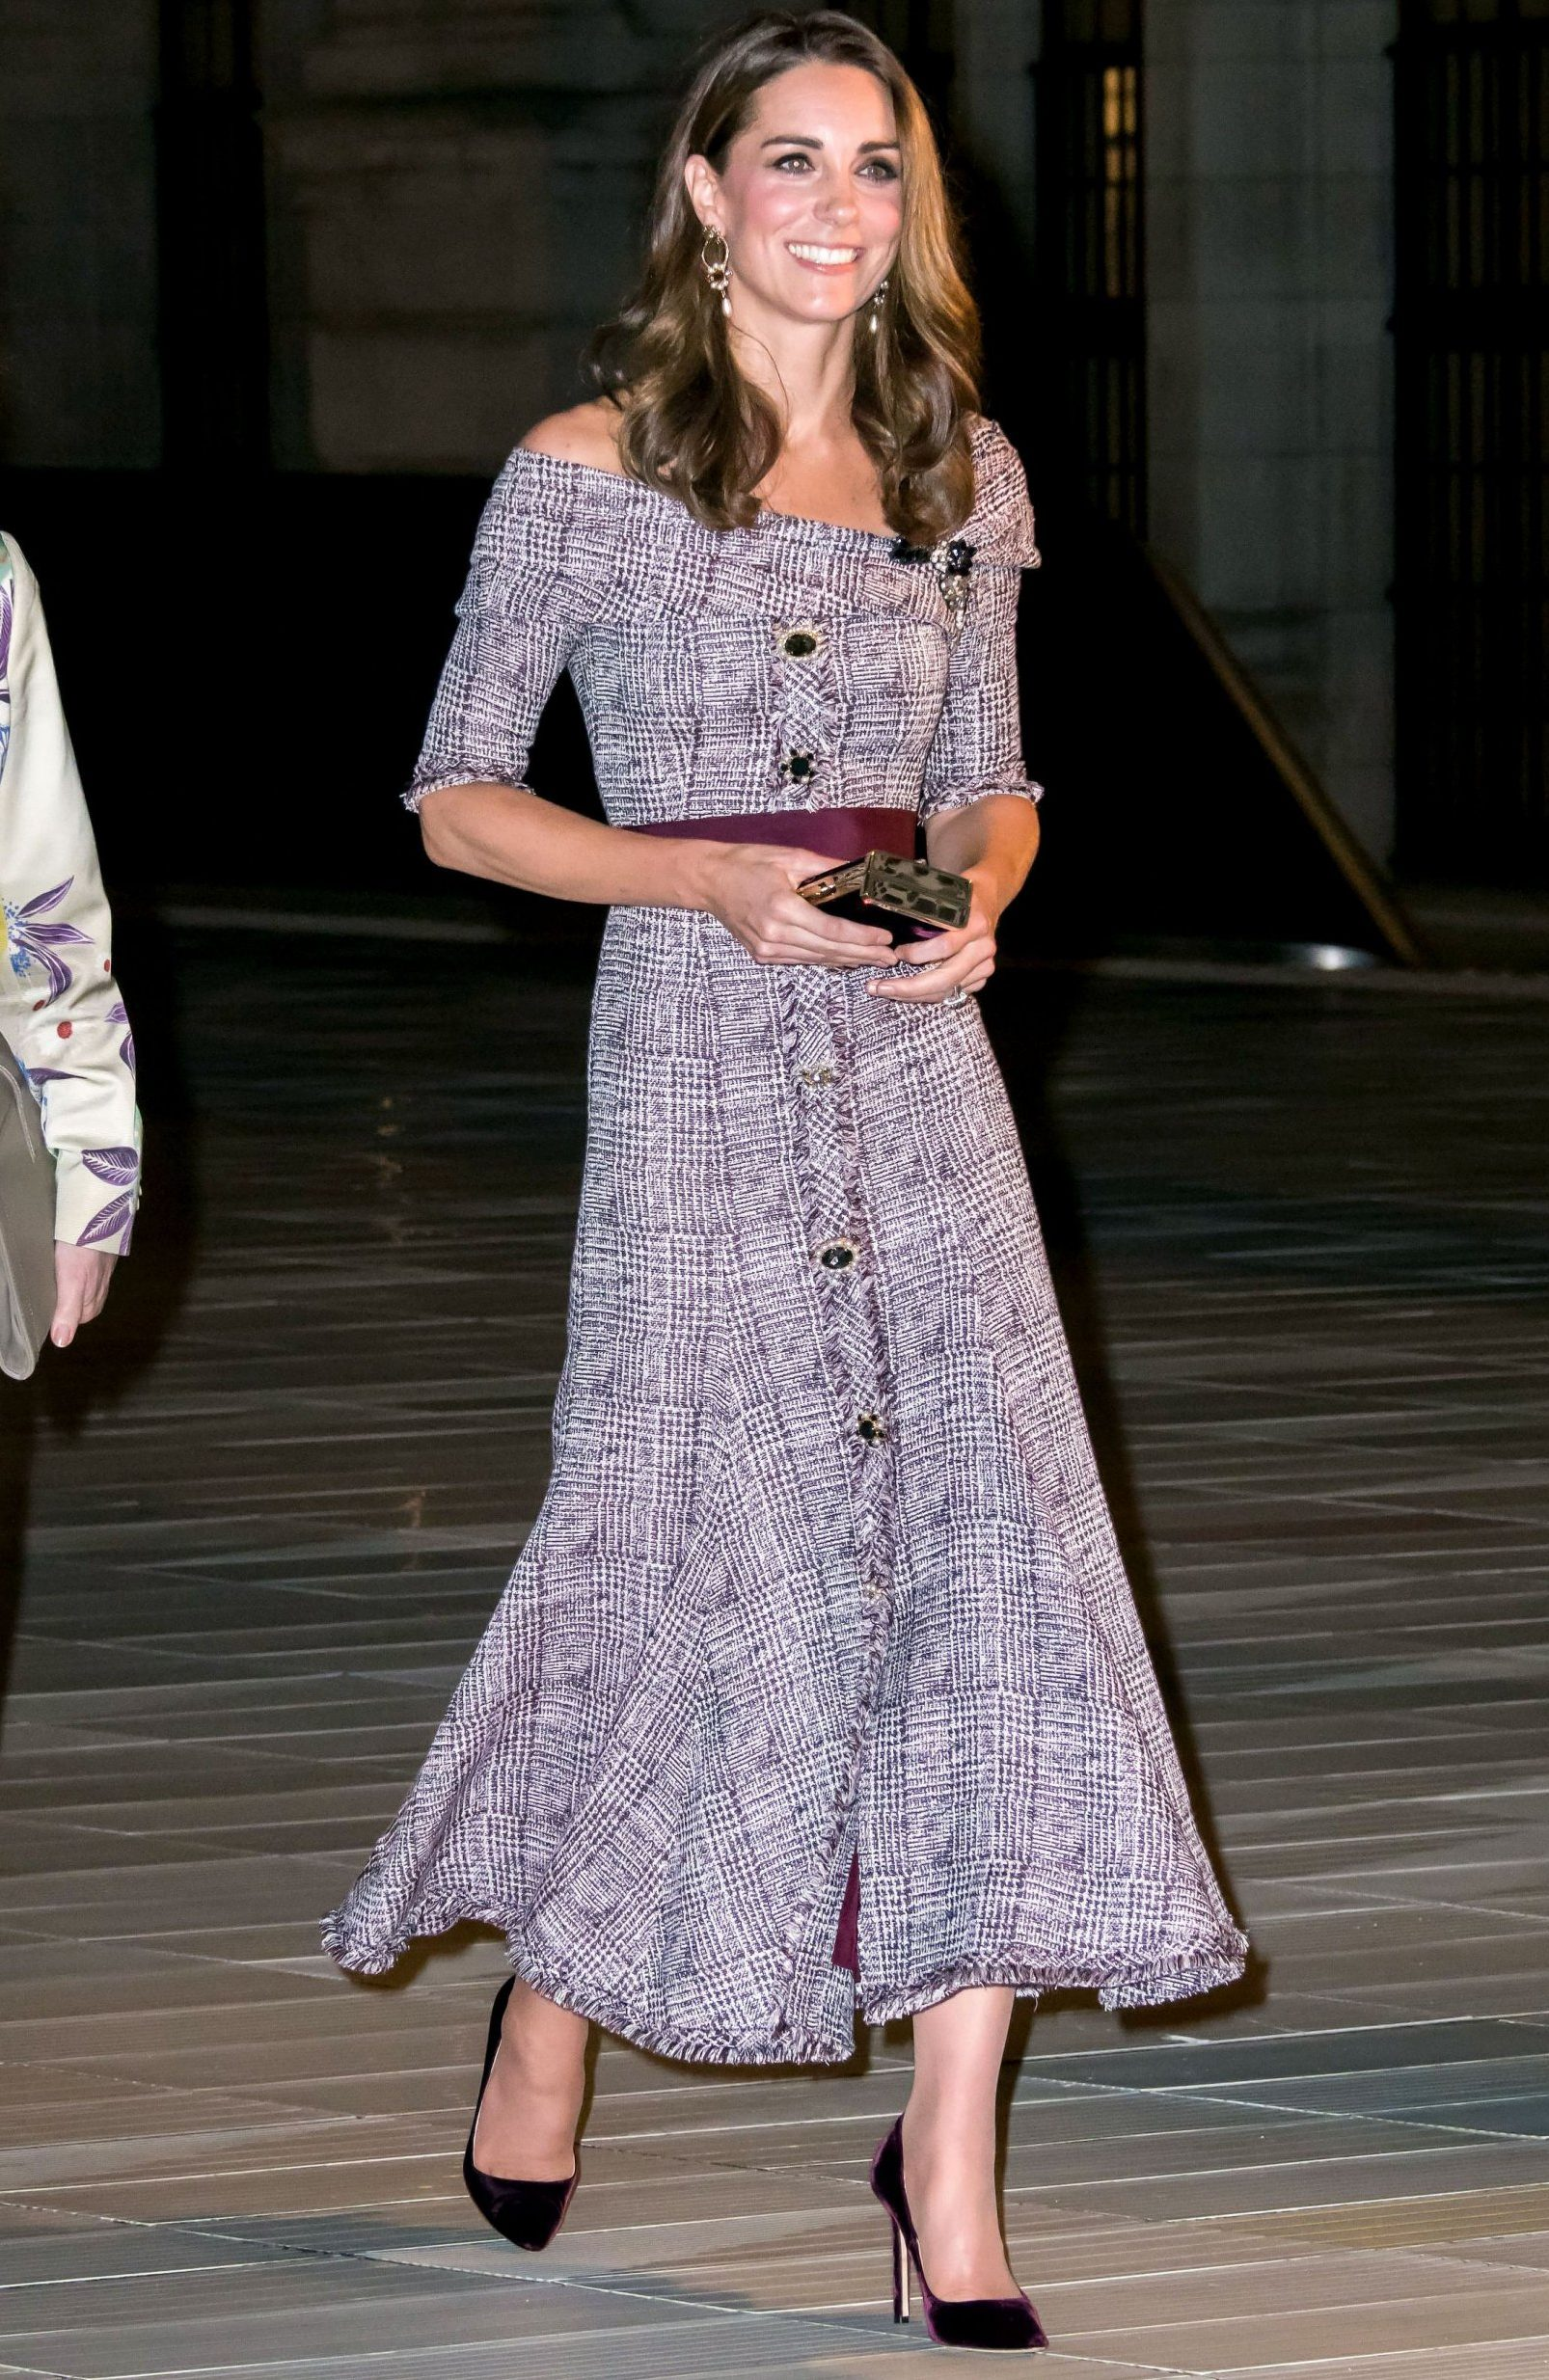 Kate Middleton stuns in Erdem on first visit to V&A museum as patron